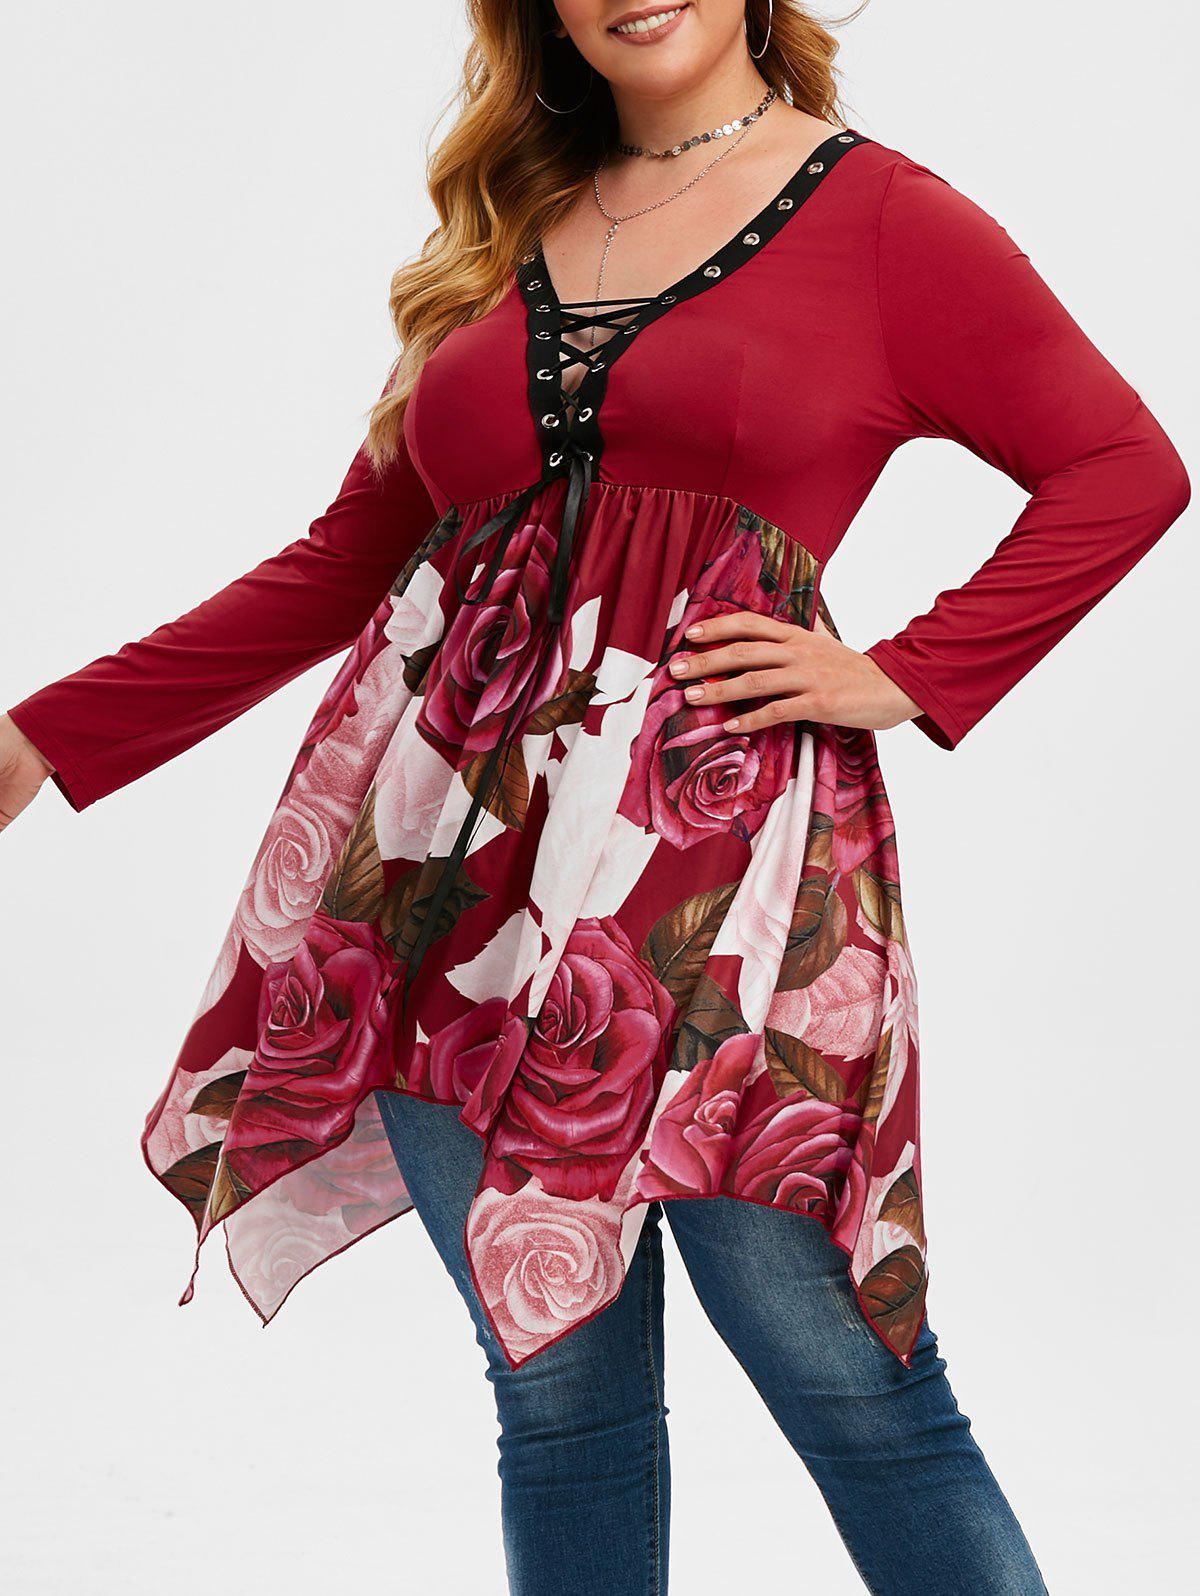 Affordable Handkerchief Floral Lace Up Plus Size Top